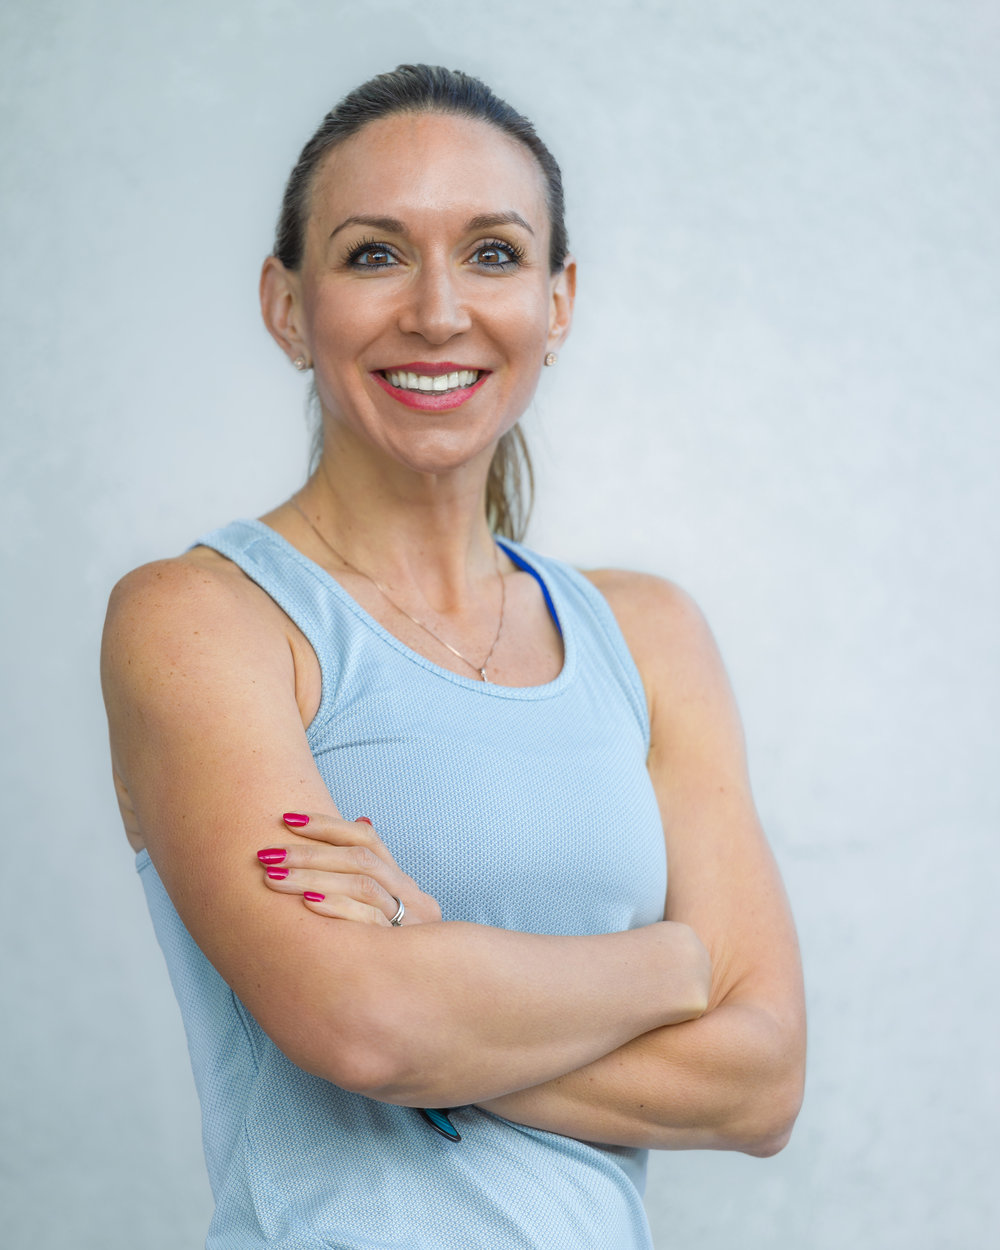 Registered Dietitian, Paula, Owner of OLNA Nutrition and Lead Nutritionist dedicated to serving Team Sugar Runs athletes.